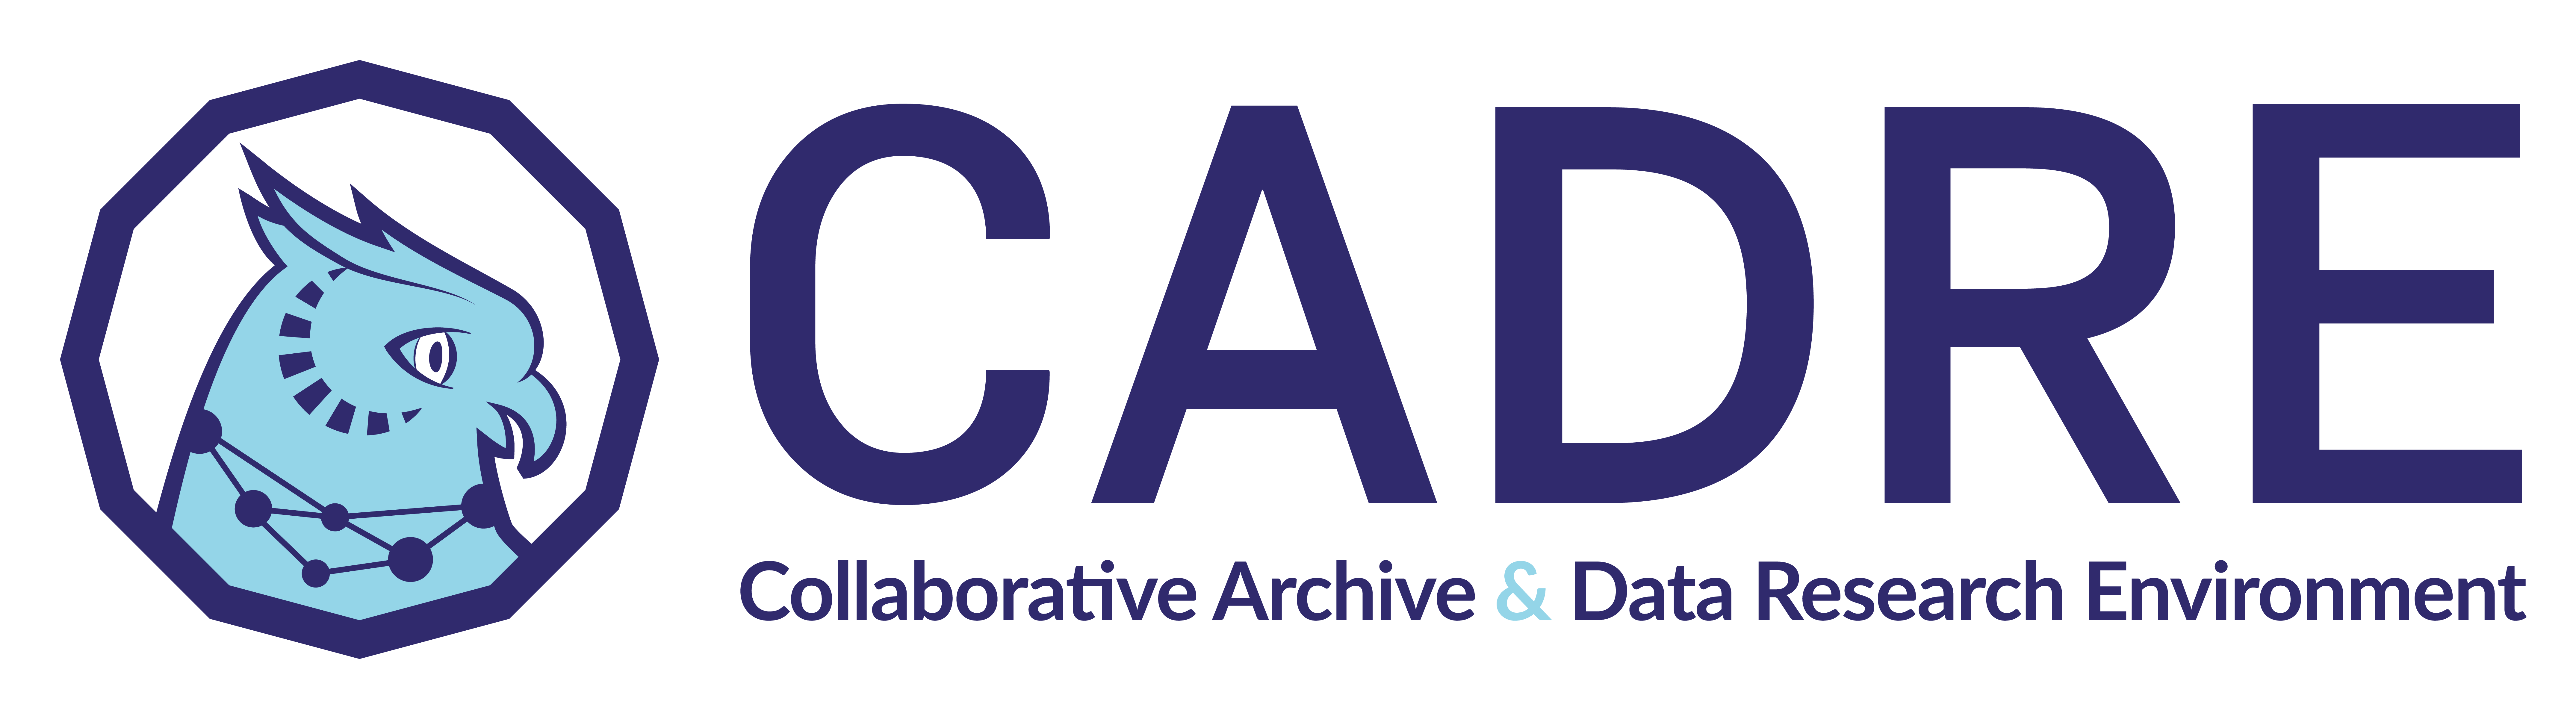 "This logo includes an image of a blue owl with a network illustration around its neck, along with the letters ""CADRE"" which the logo says stand for: Collaborative Archive and Data Research Environment."